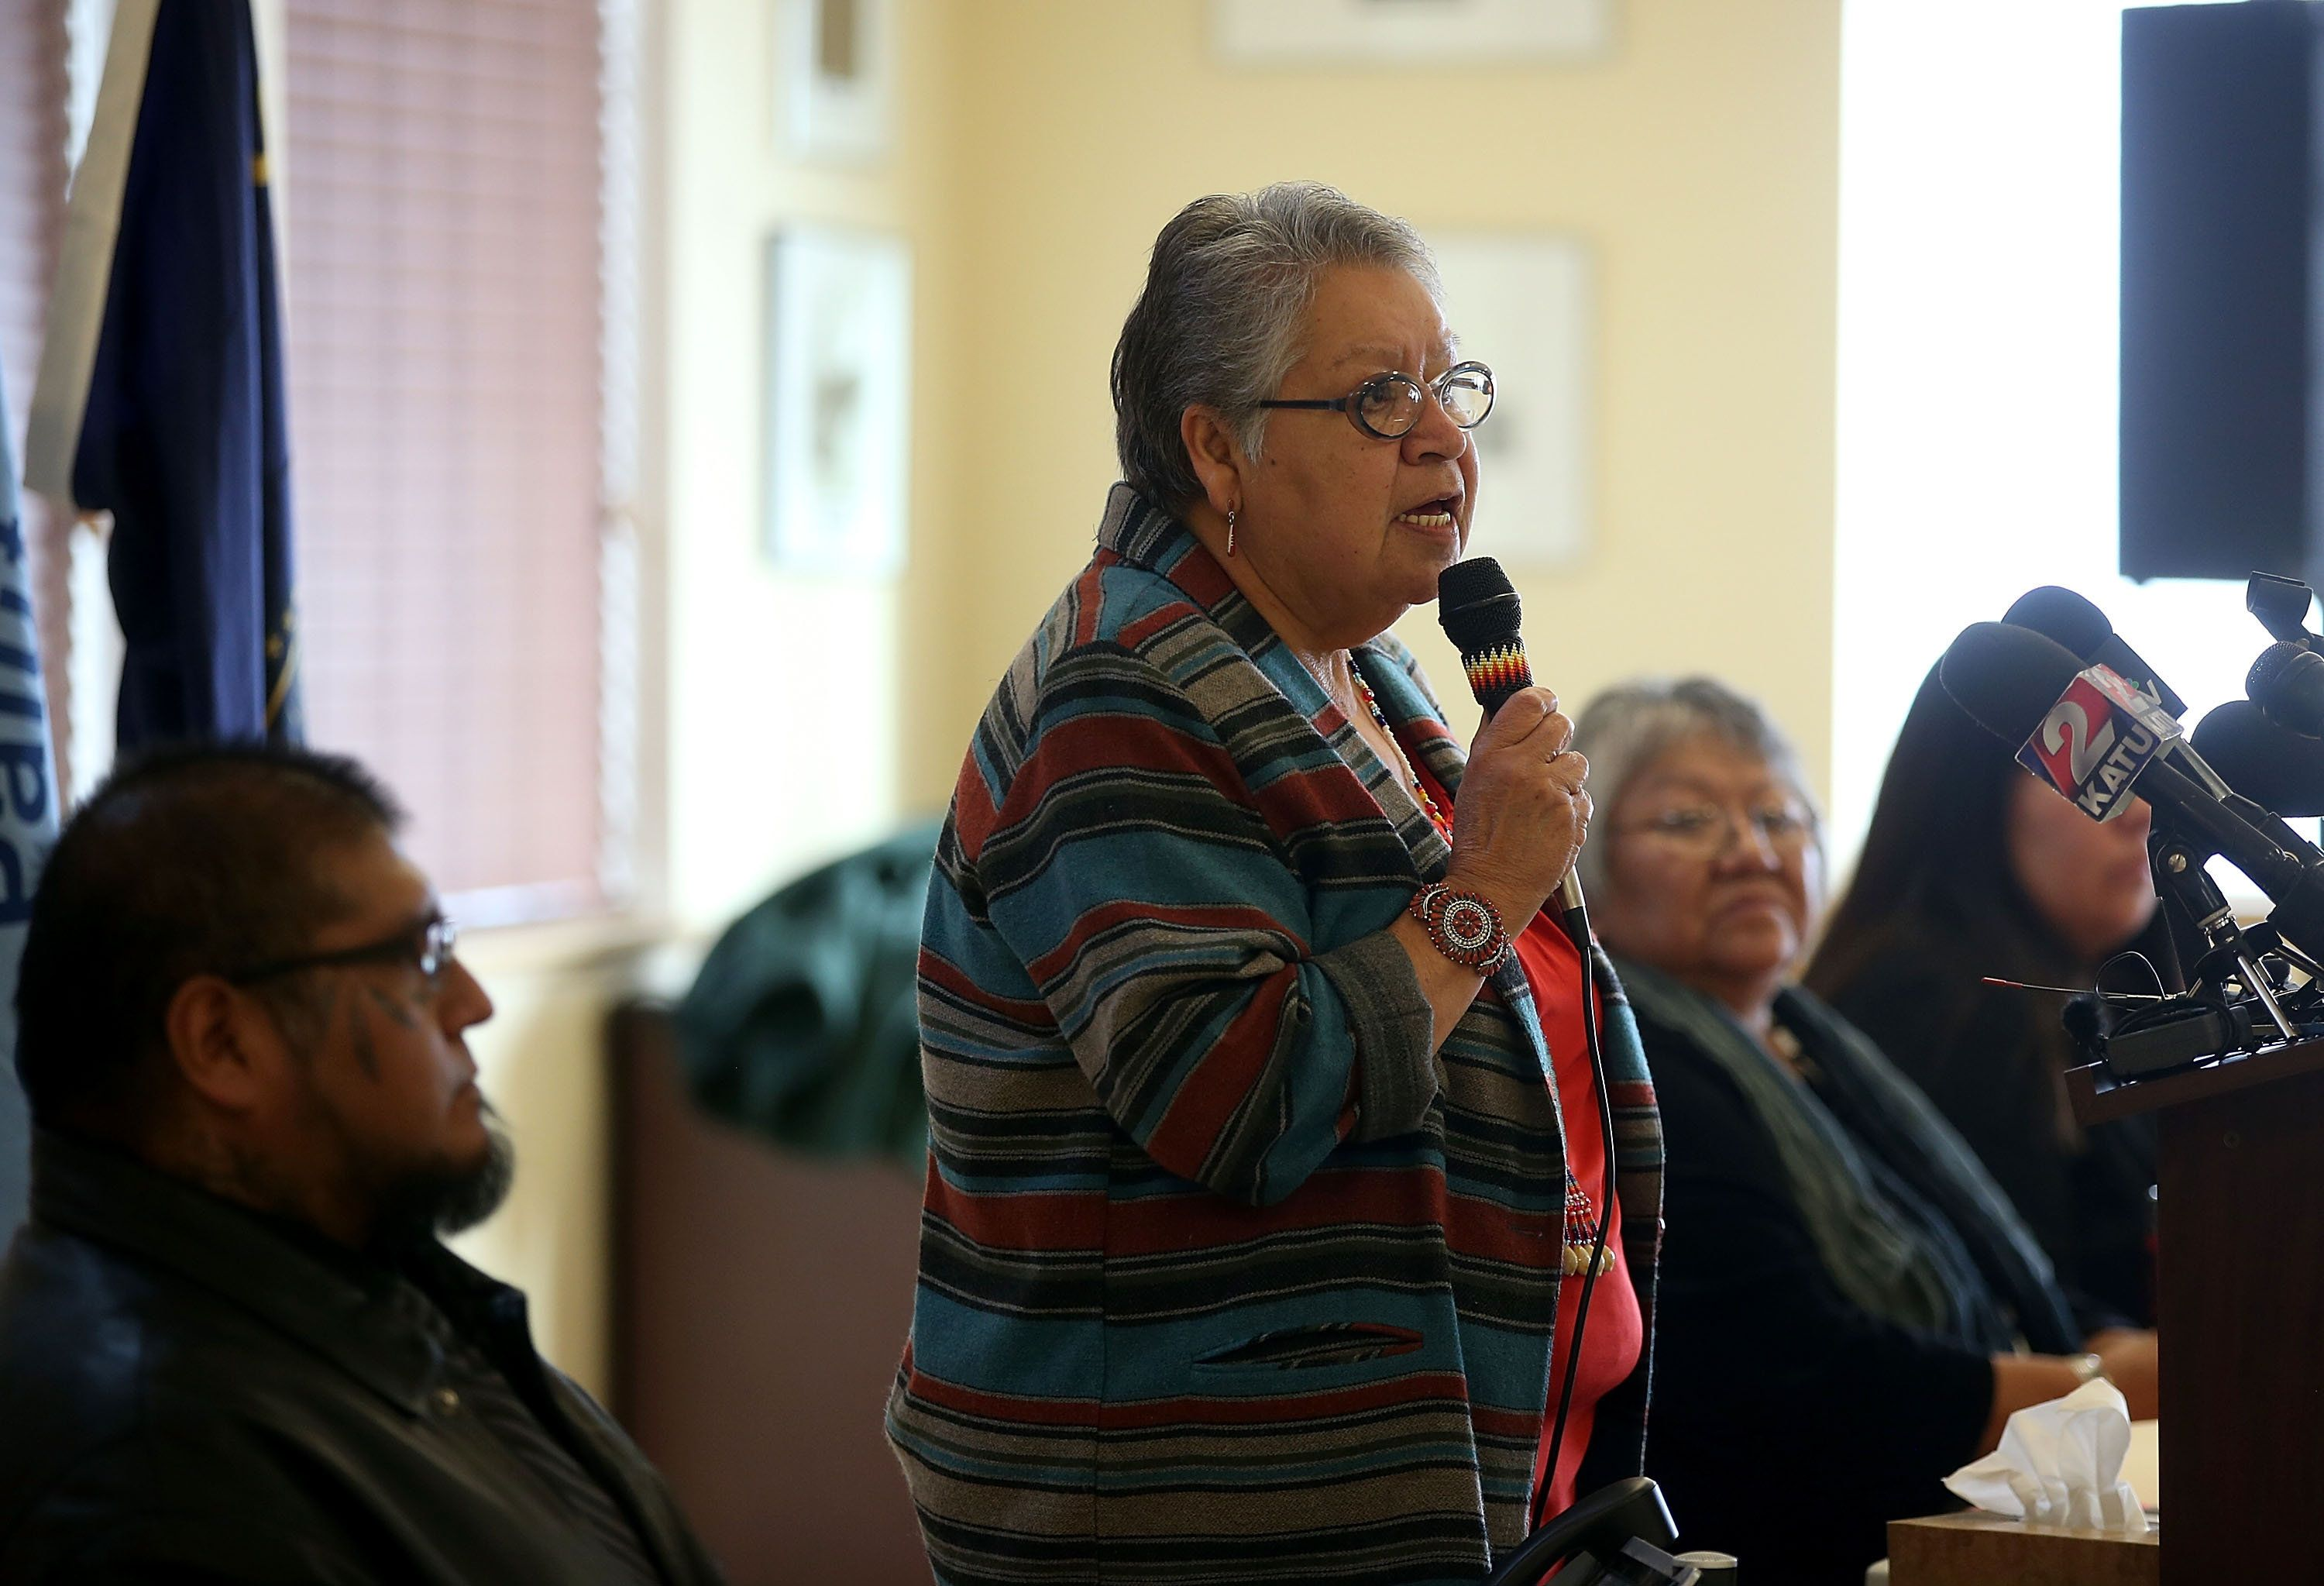 BURNS, OR - JANUARY 06:  Burns Paiute Tribal Council chair Charlotte Rodrique speaks during a press conference on January 6, 2016 in Burns, Oregon.  The Burns Paiute Tribal Council denounced the occupation of the Malheur National Wildlife Headquarters by an armed anti-government militia group and are calling for an end to the standoff.  (Photo by Justin Sullivan/Getty Images)